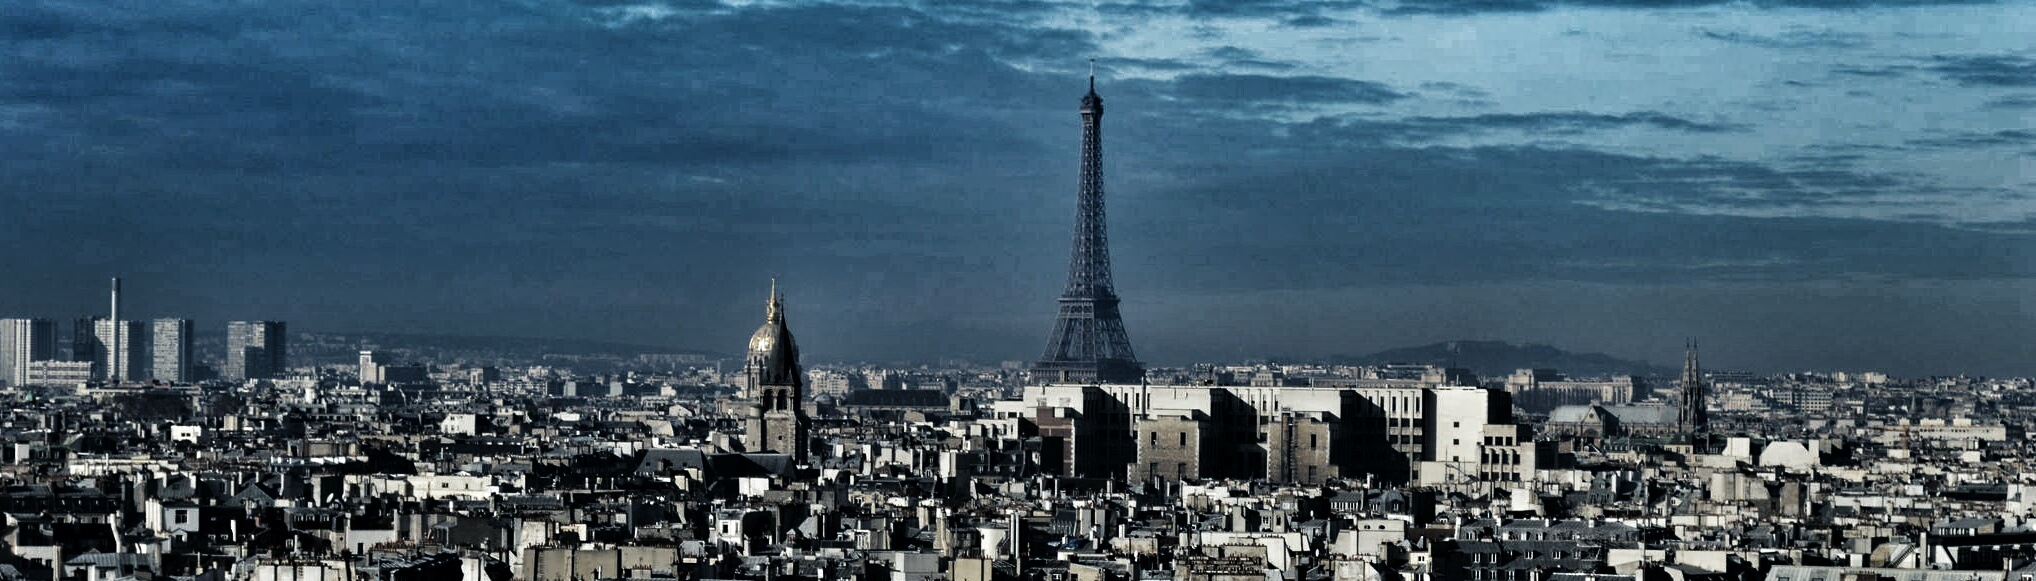 Dark Paris by CaballerodeGracia